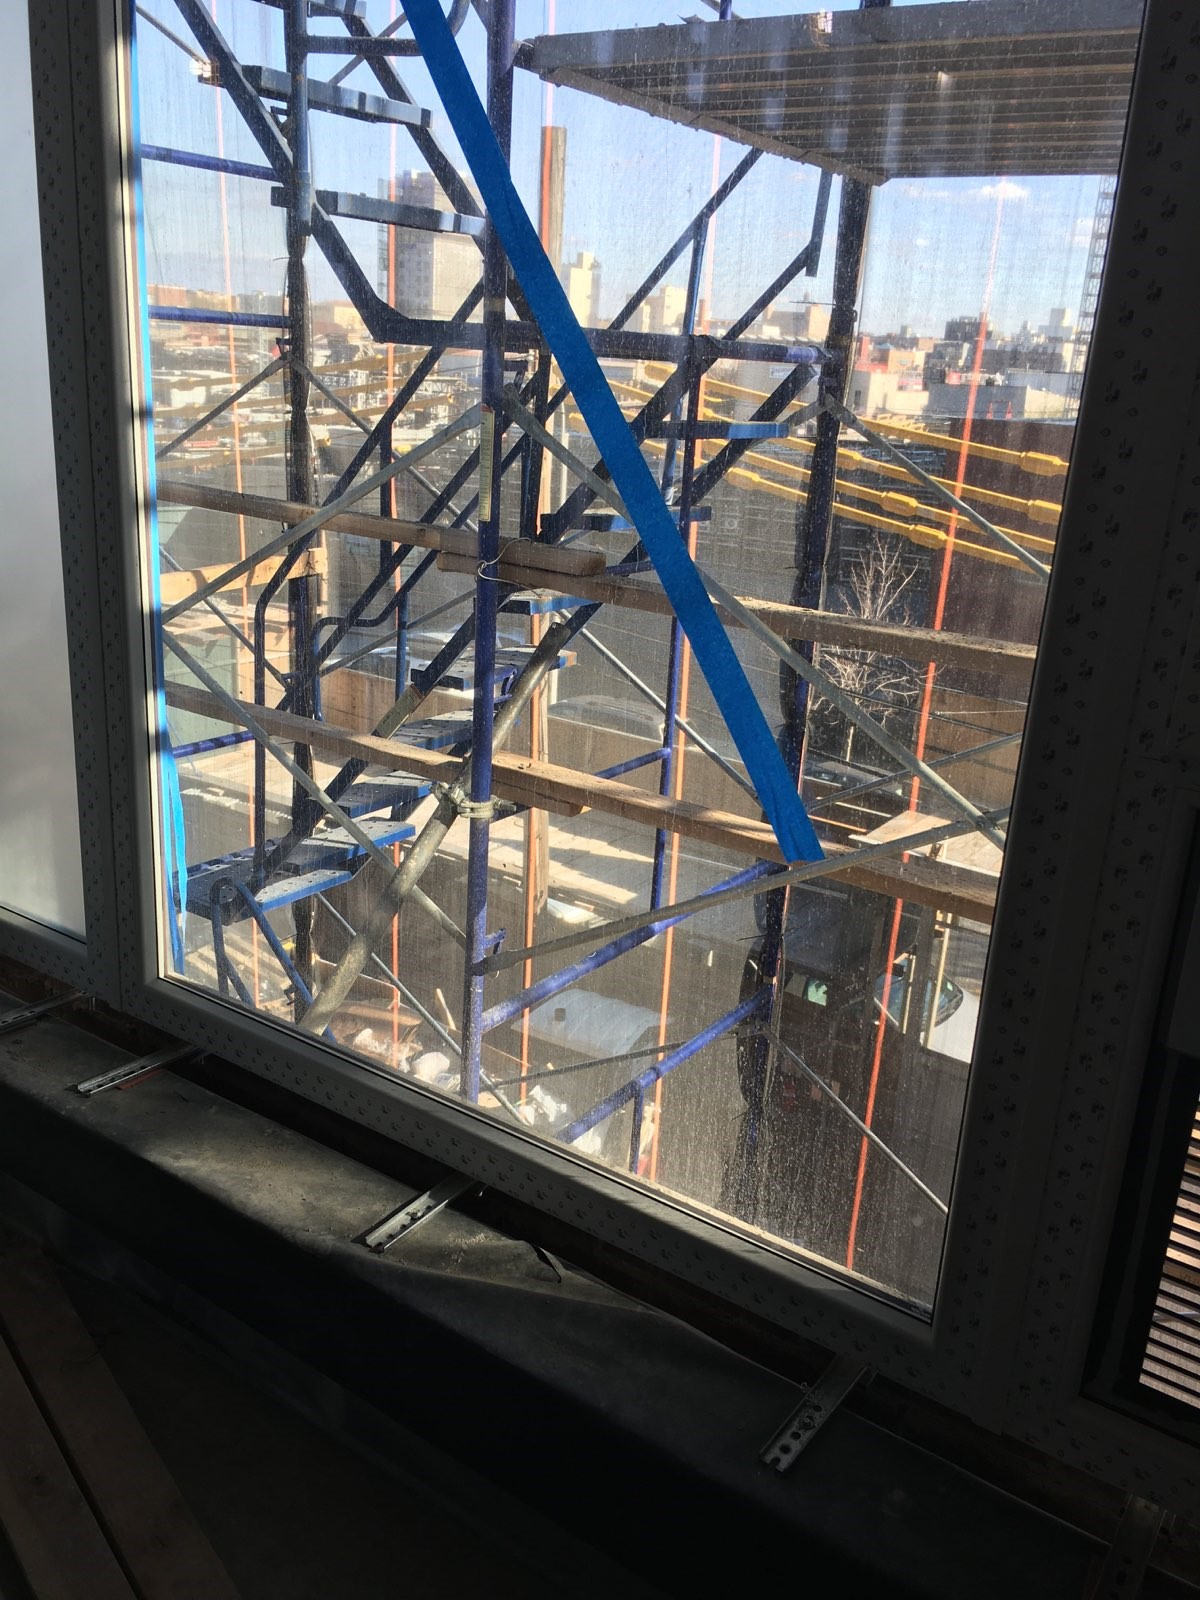 Marriott Long Island City Hotel with INTUS WindowsMarriott Long Island City Hotel with INTUS Windows